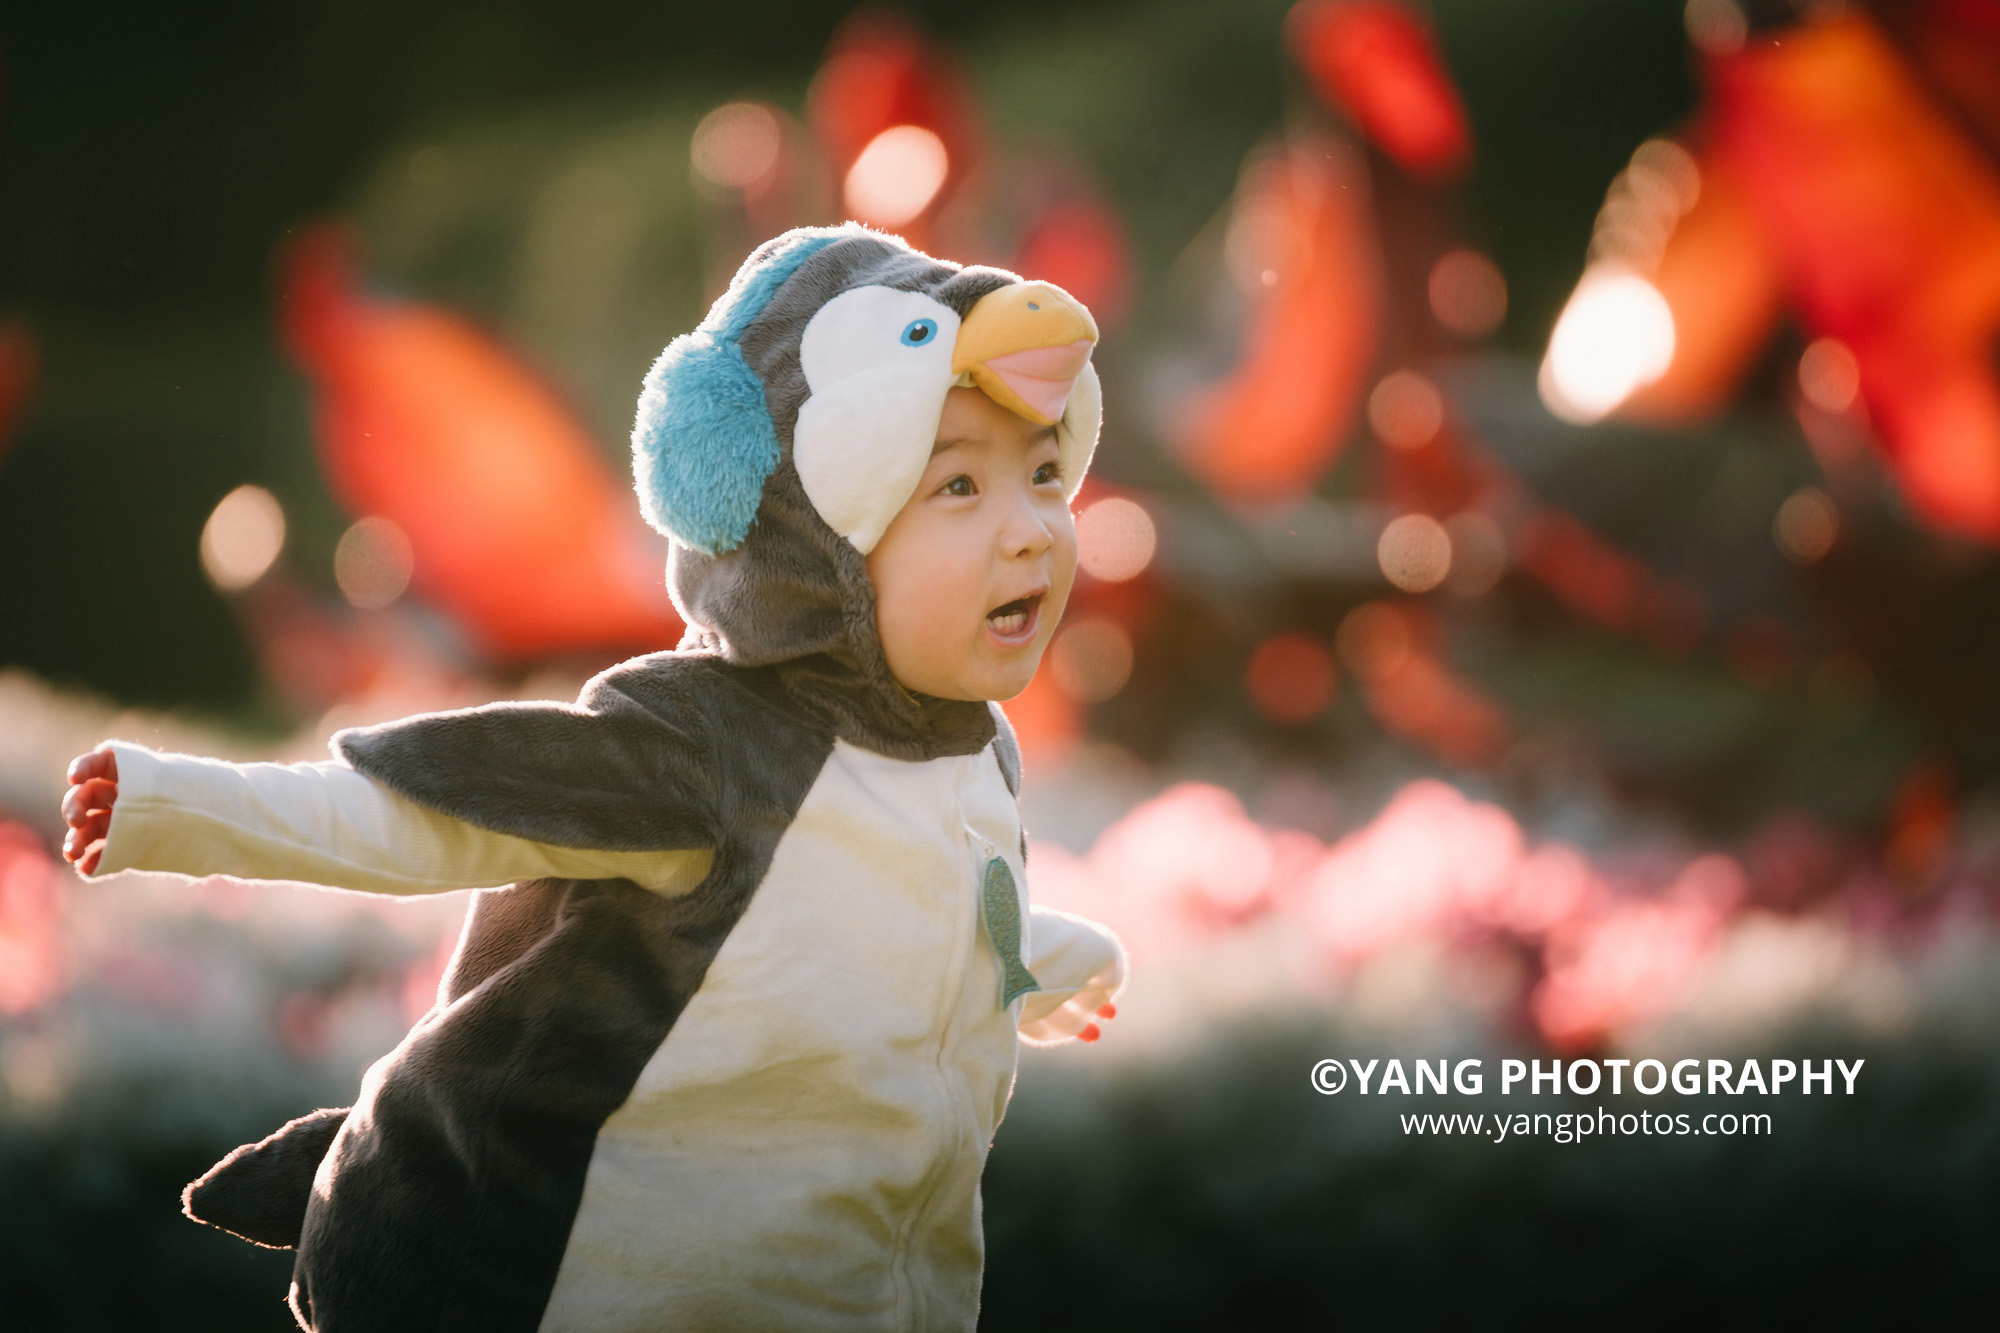 penguin-in-the-garden-Dodo-yangphotos